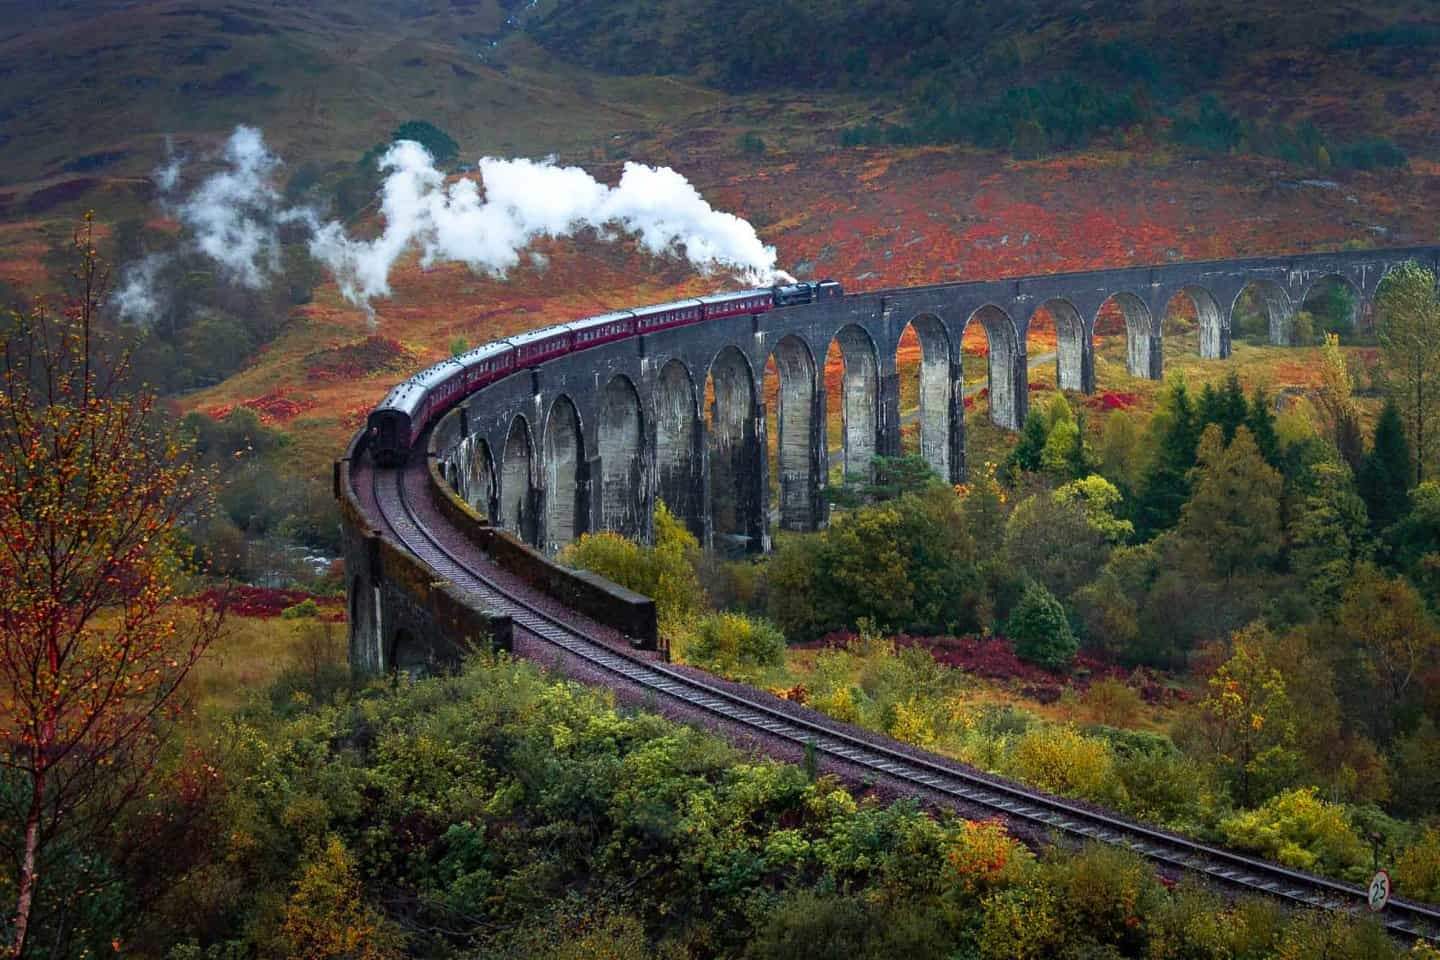 The magical Harry Potter train at Glenfinnan Viaduct rolls through this Autumn scene.